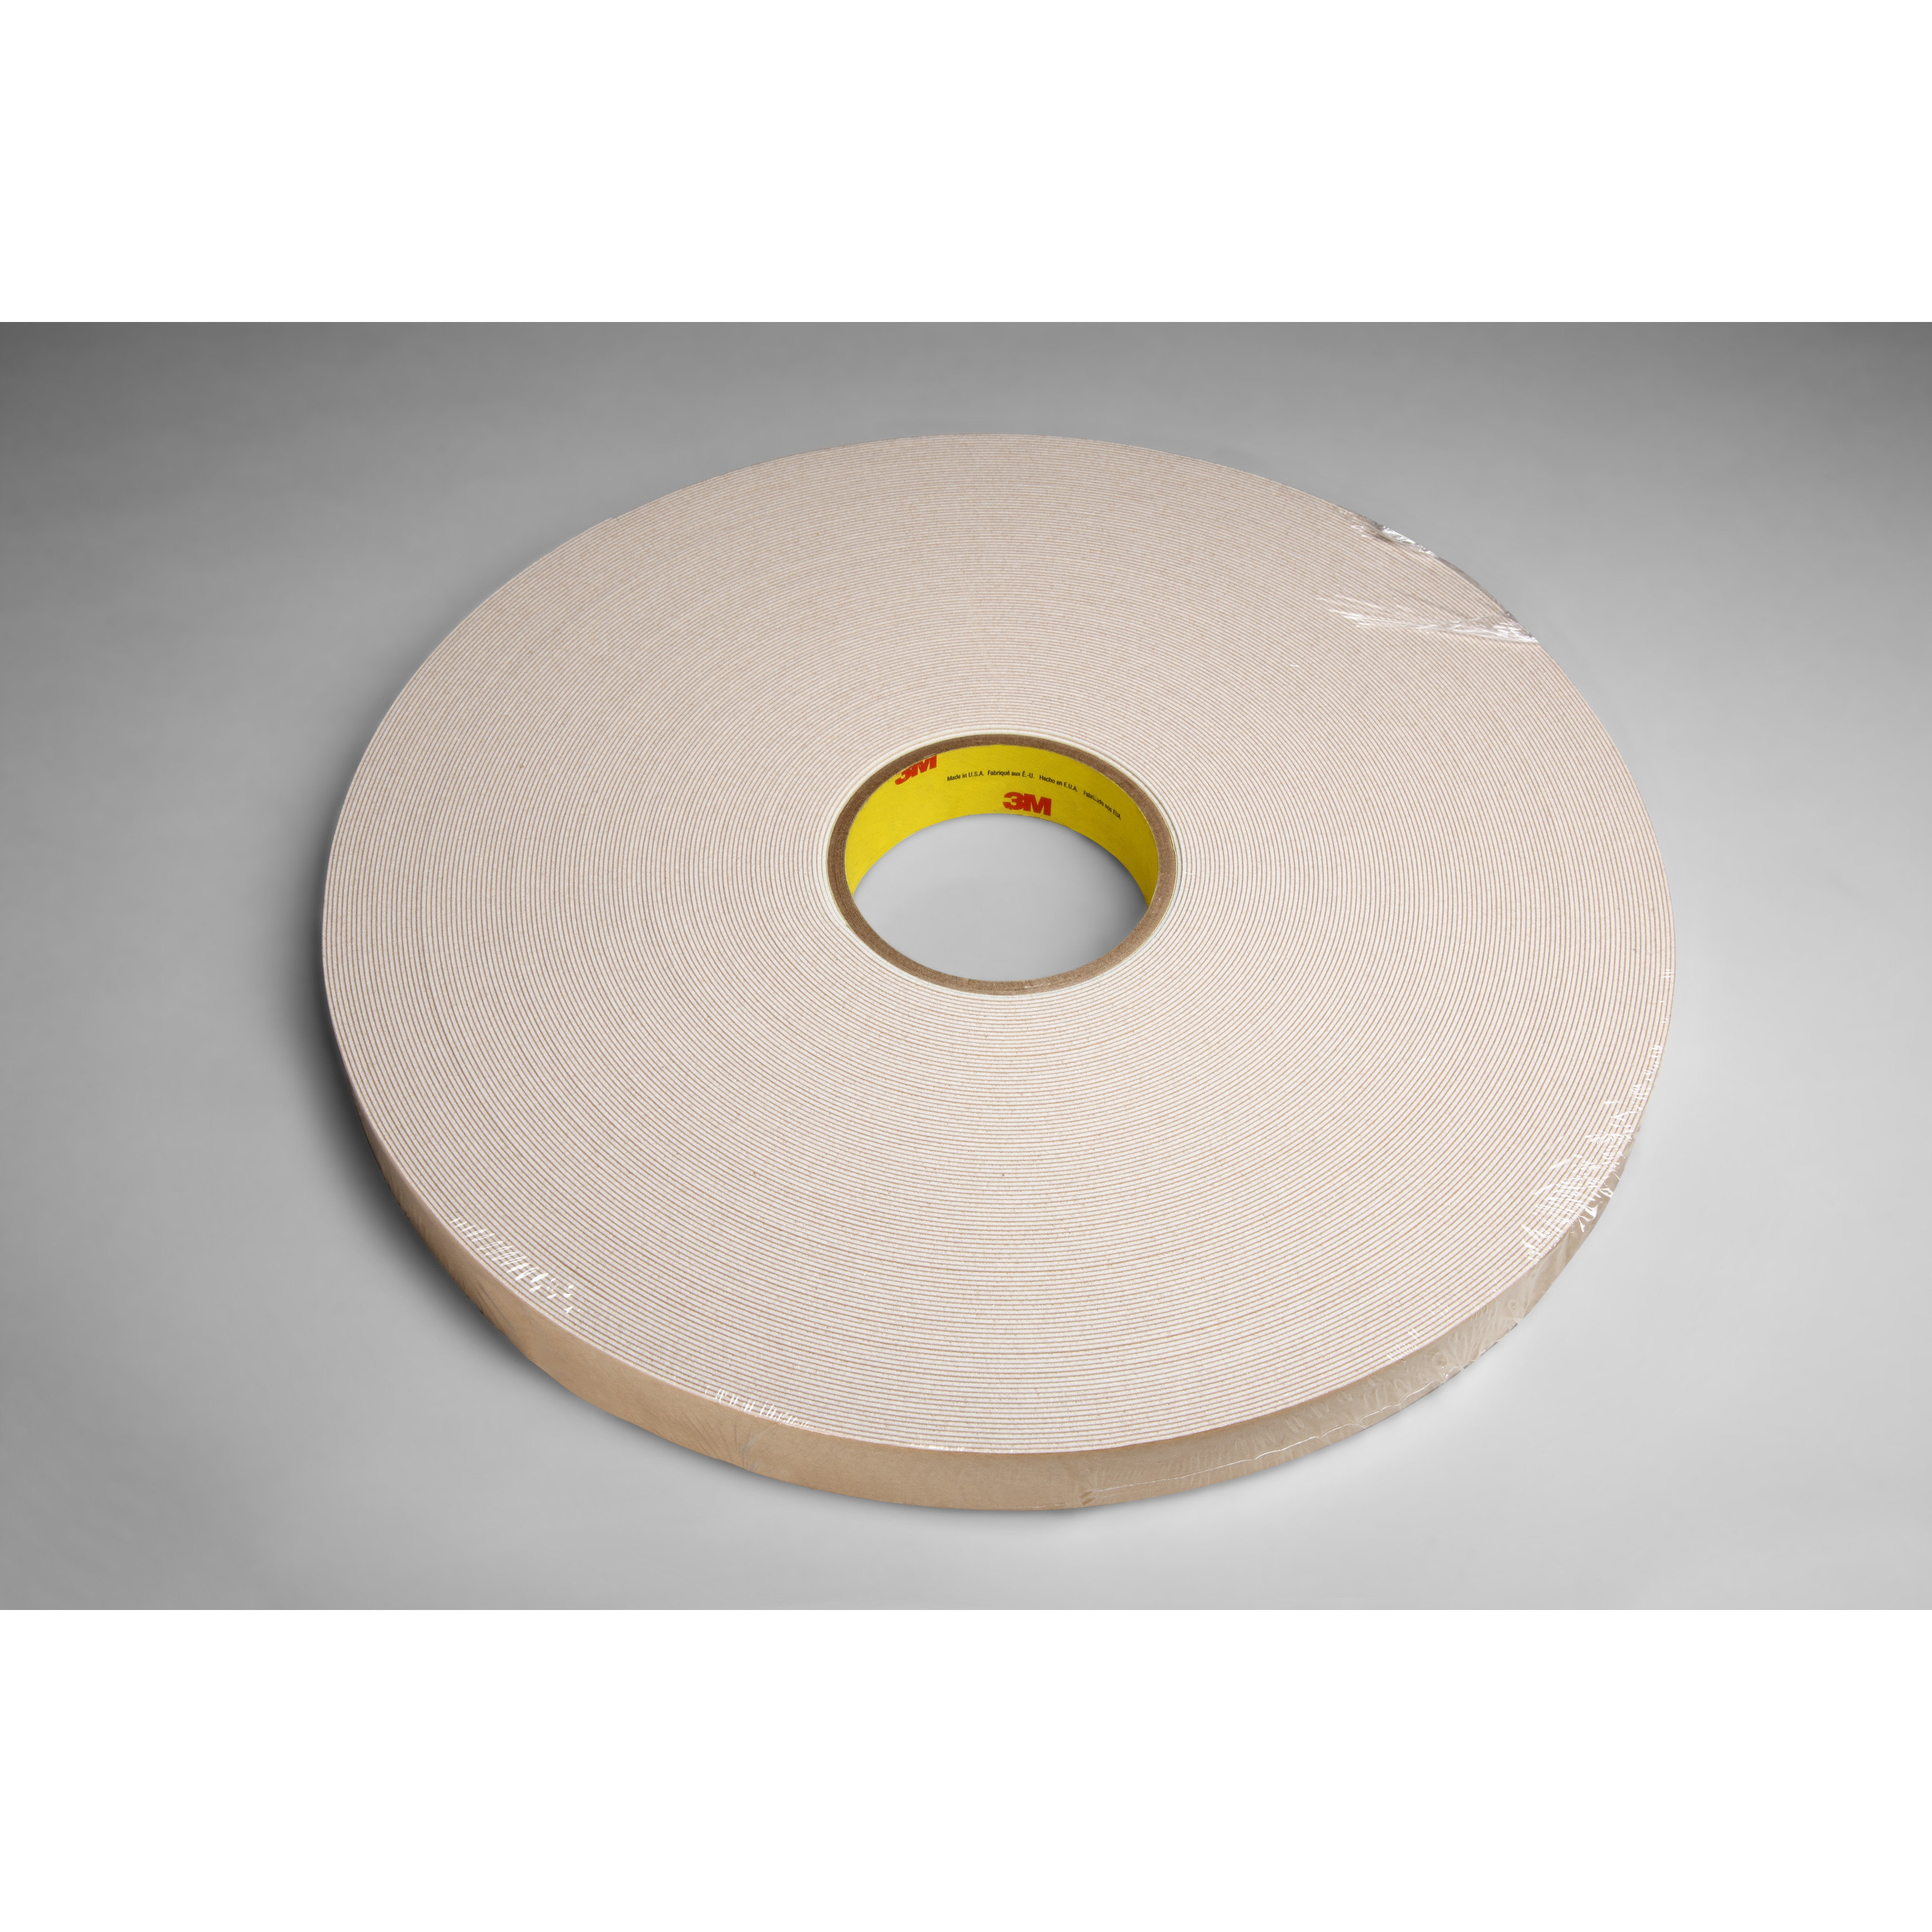 3M™ Double Coated Urethane Foam Tape 4085, Natural, 3/4 in x 72 yd, 45 mil, 12 rolls per case